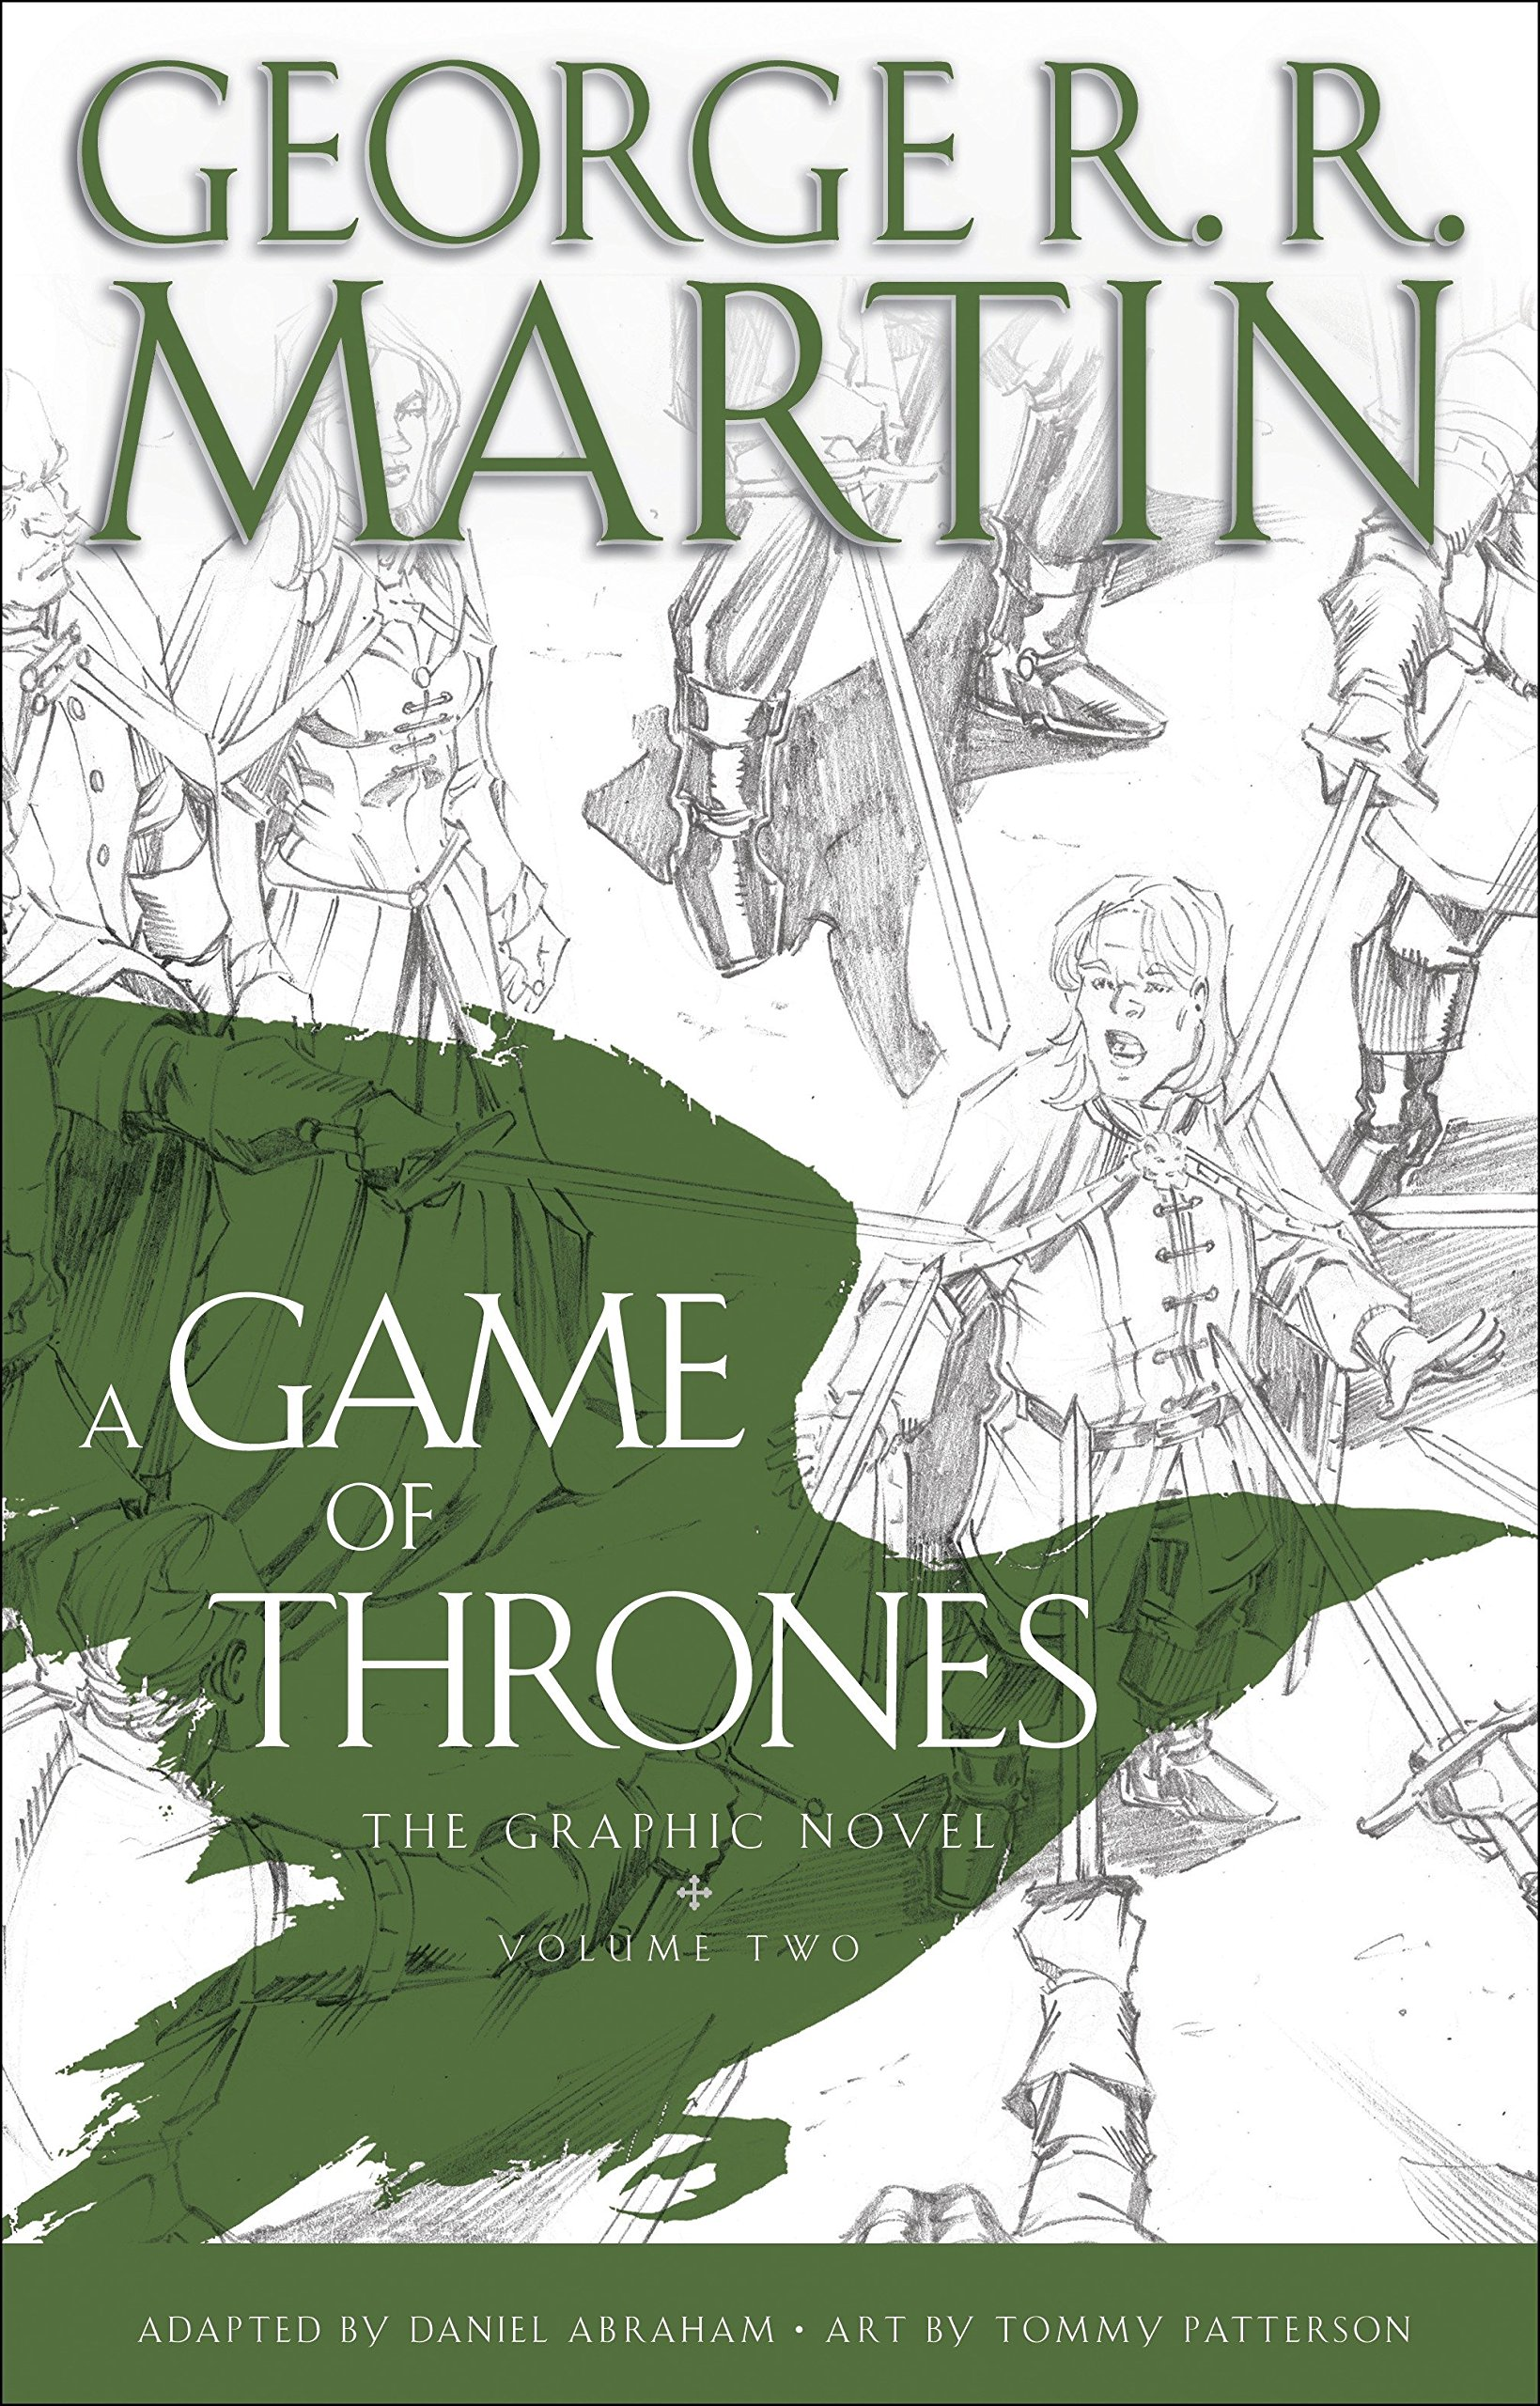 A Game Of Thrones  The Graphic Novel  Volume Two